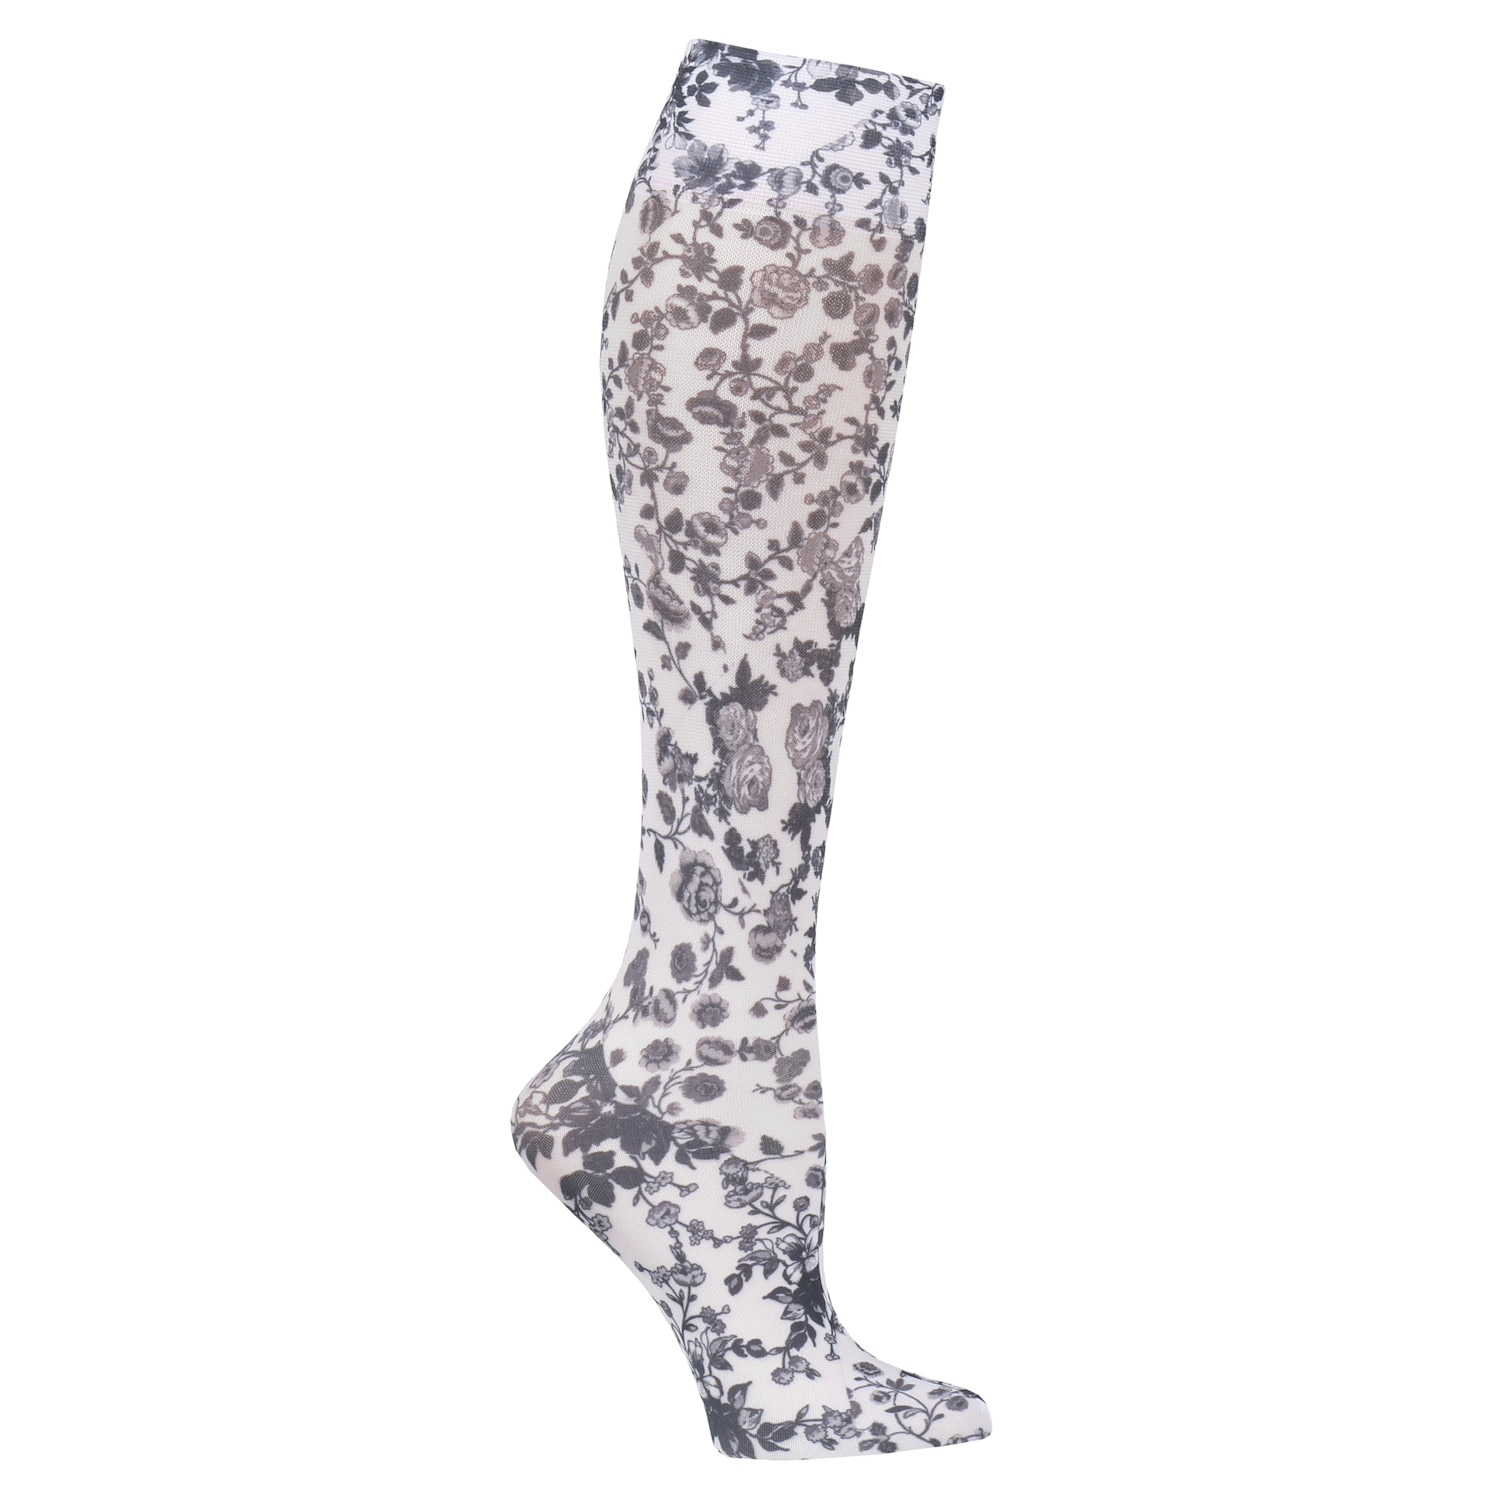 Celeste Stein Women/'s Firm Compression Wide Calf Knee Highs Black Lace